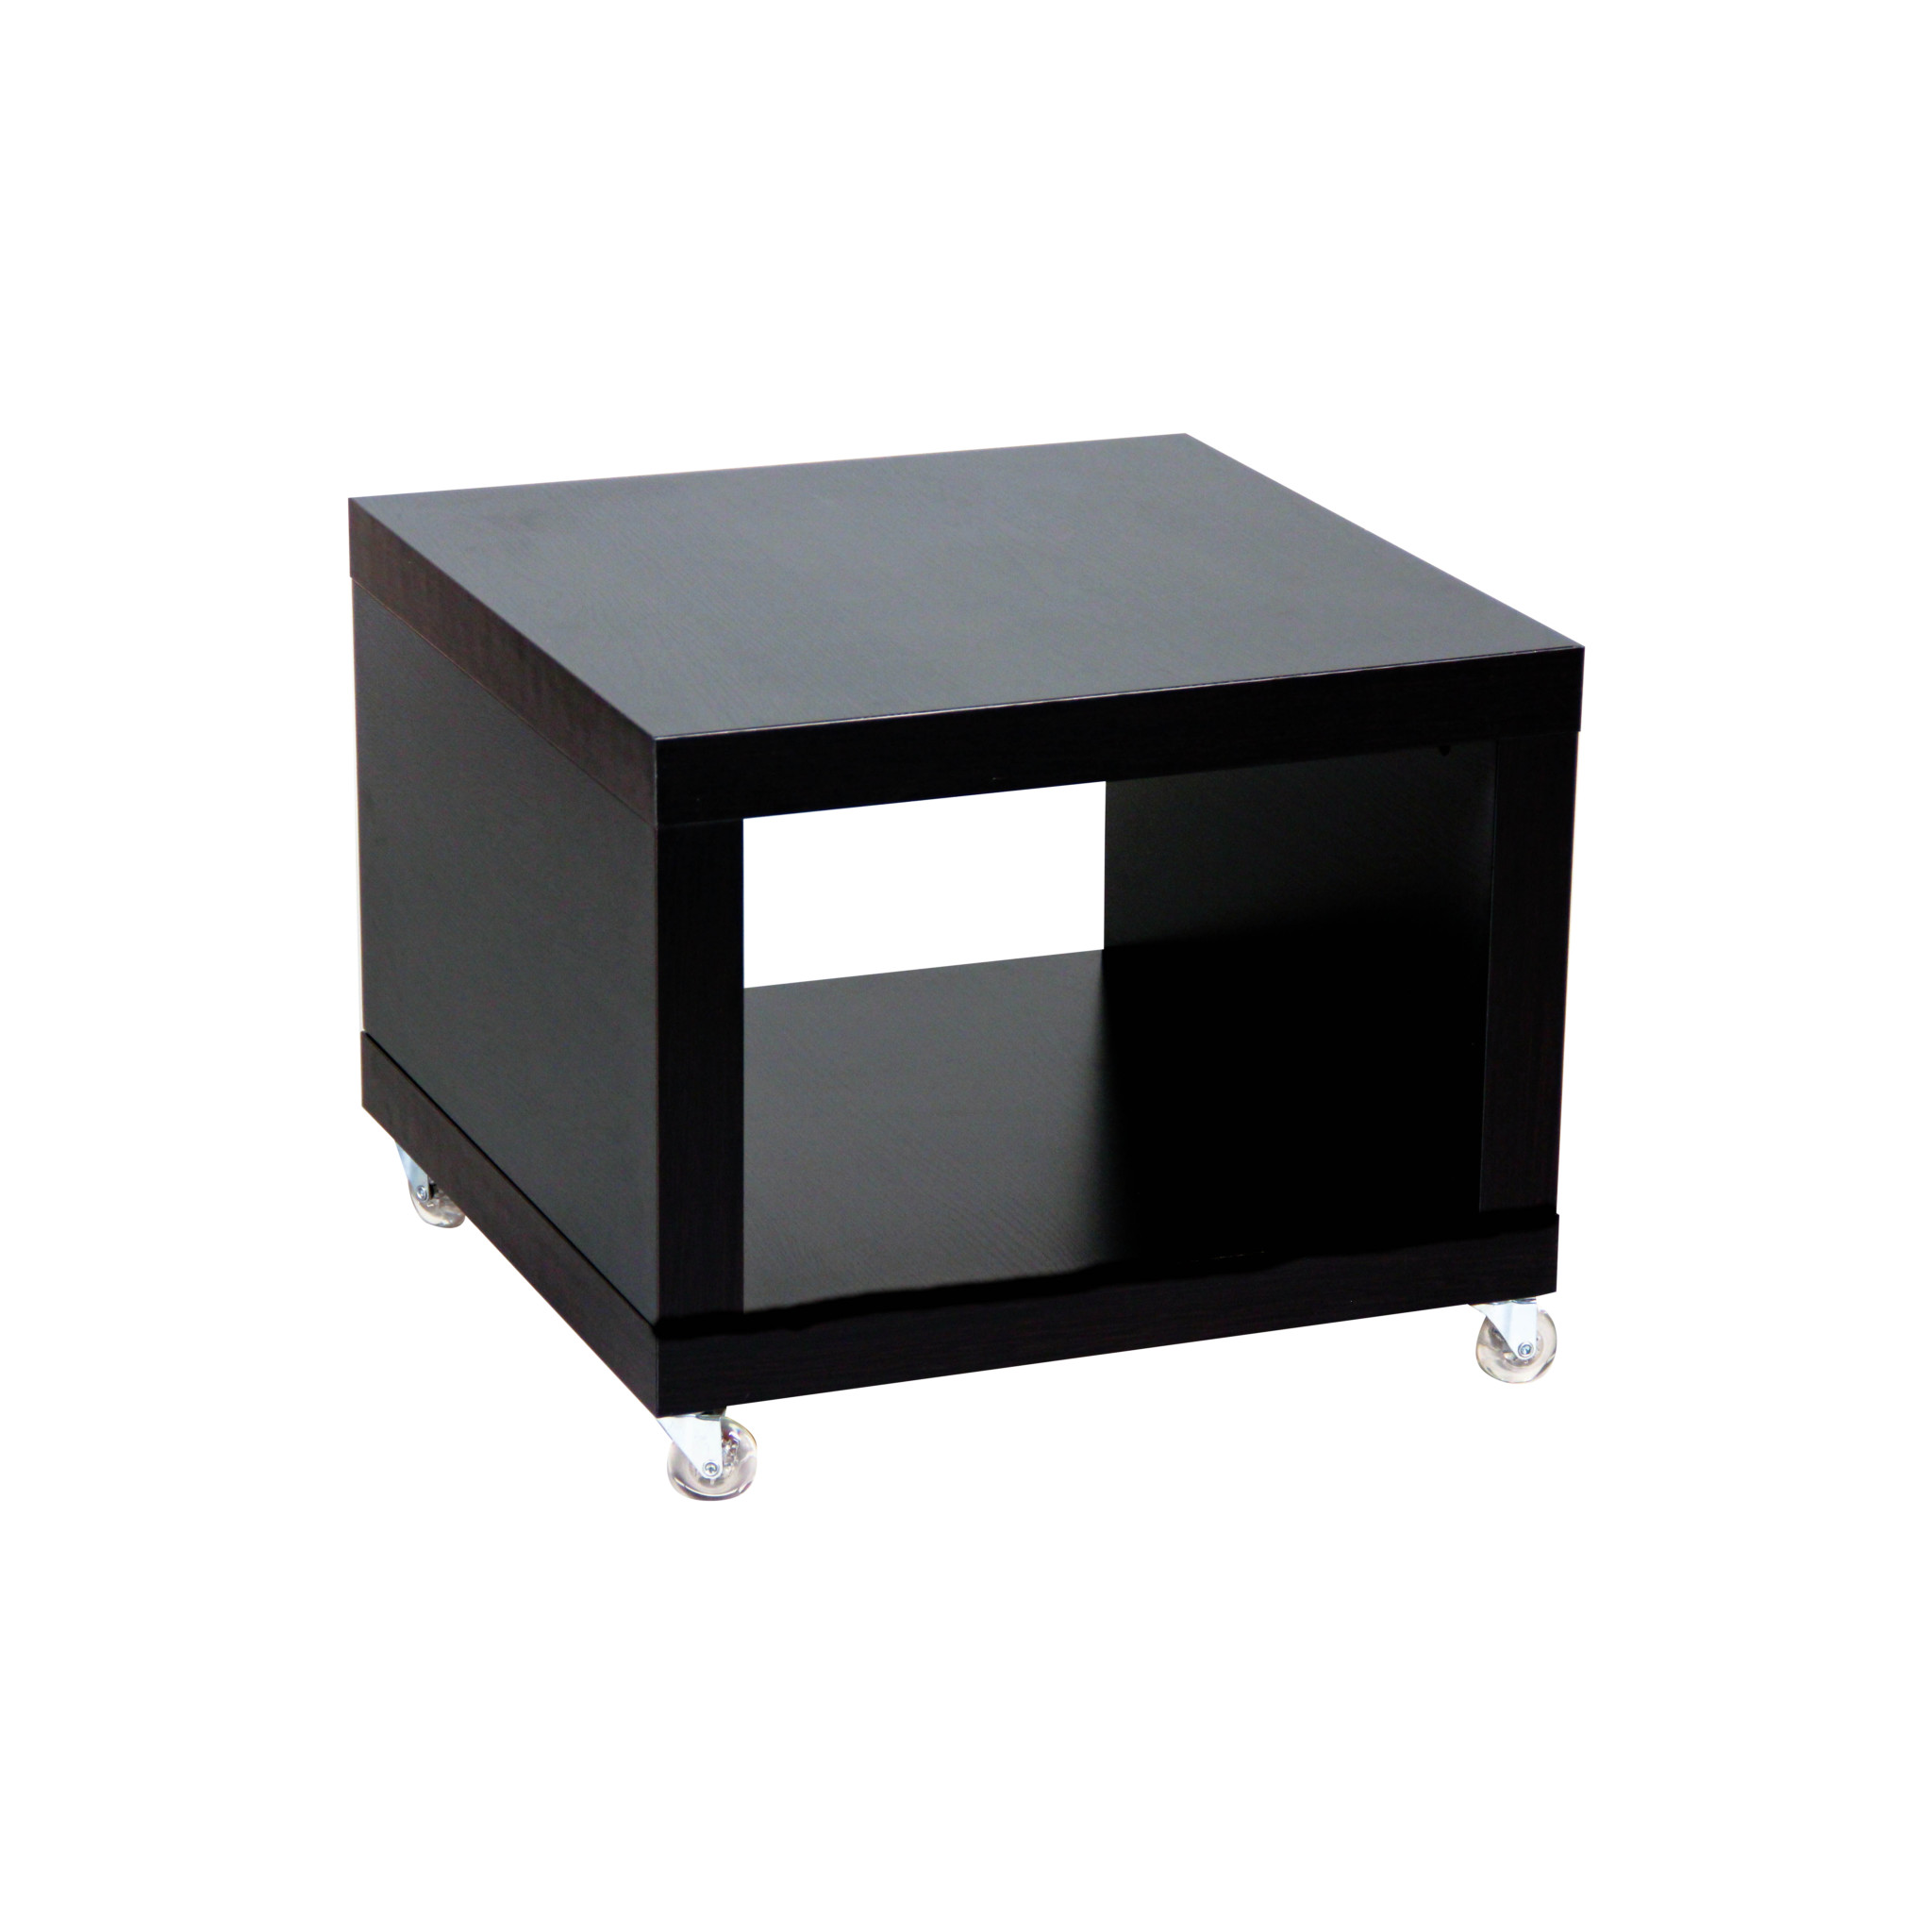 Black Cube Coffee Table With Wheels